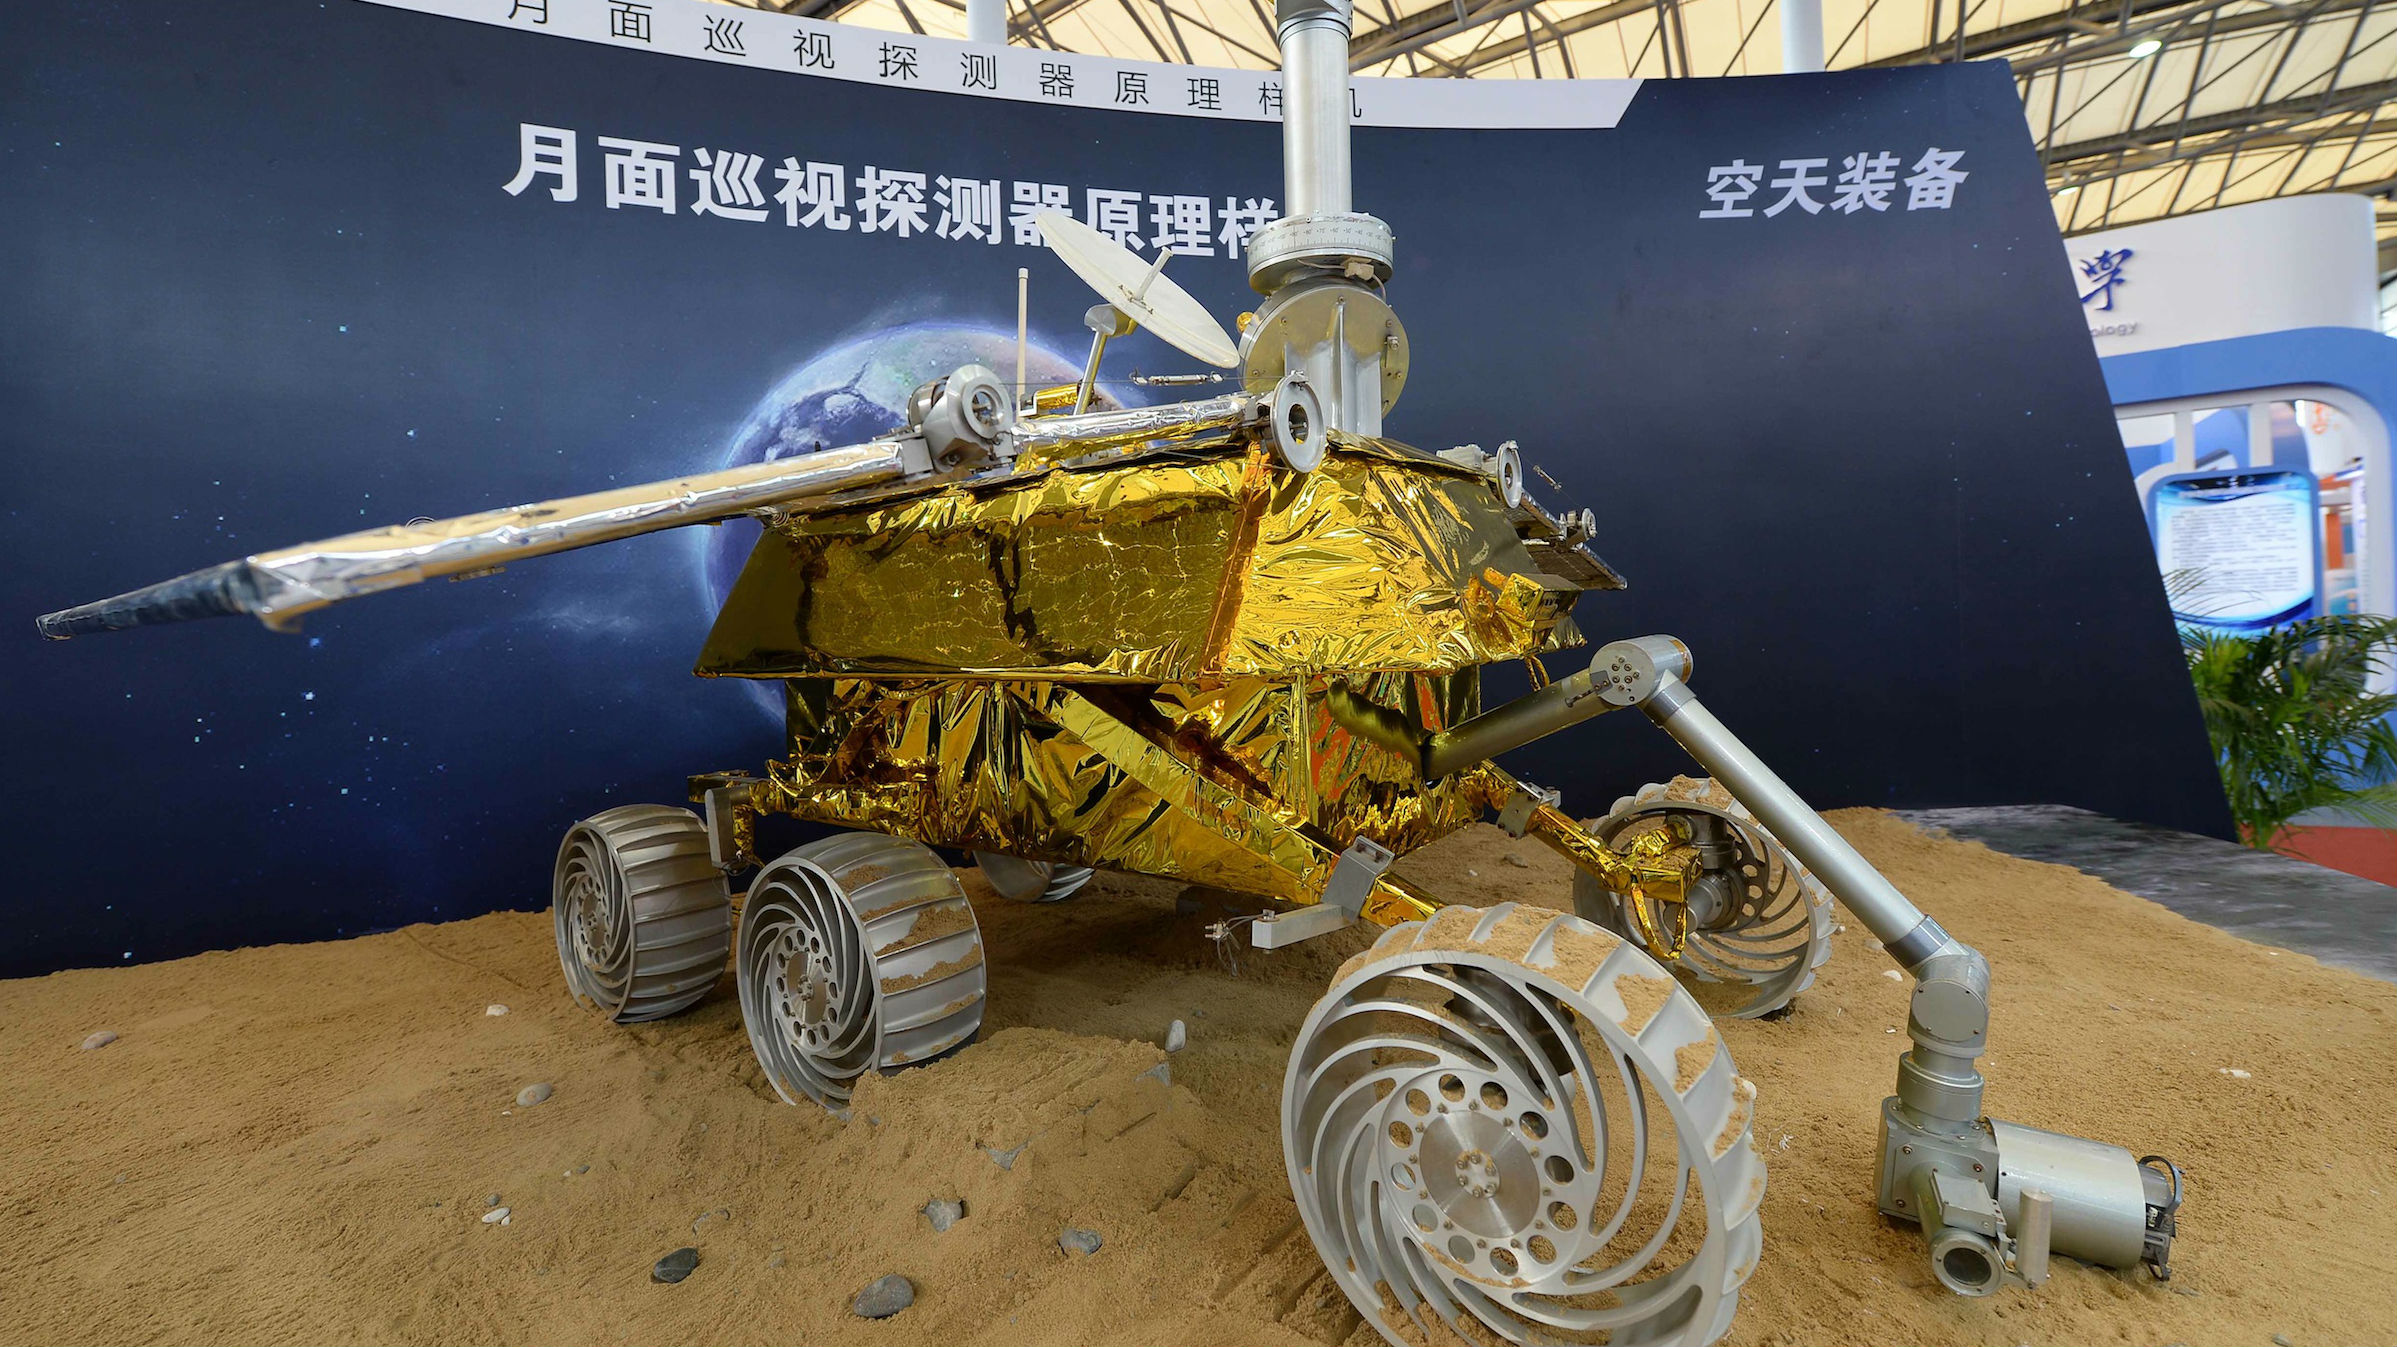 lunar rover china on sand getty web